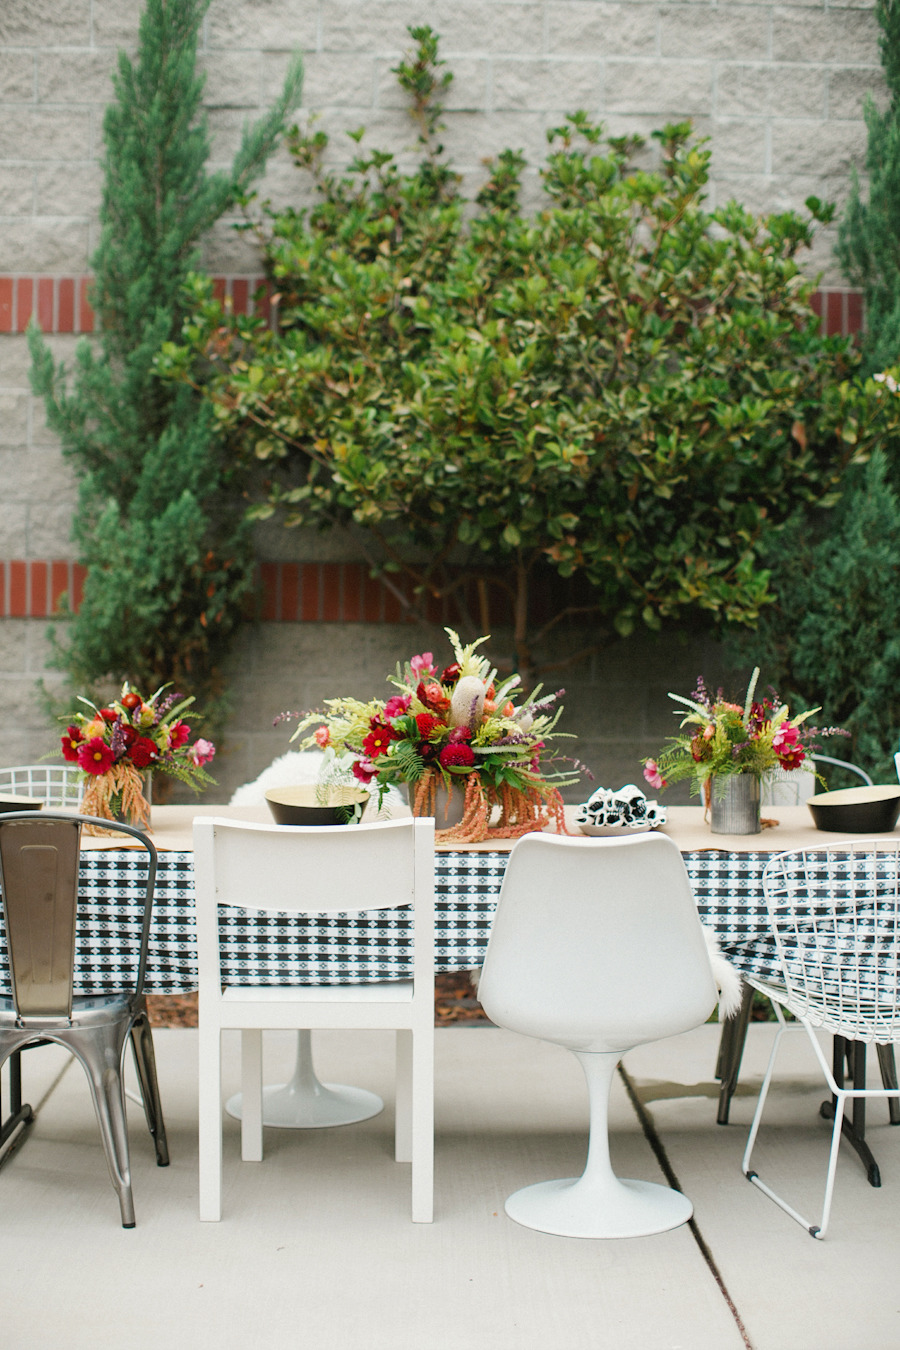 50 Outdoor Party Ideas You Should Try Out This Summer on Backyard Table Decor id=28264